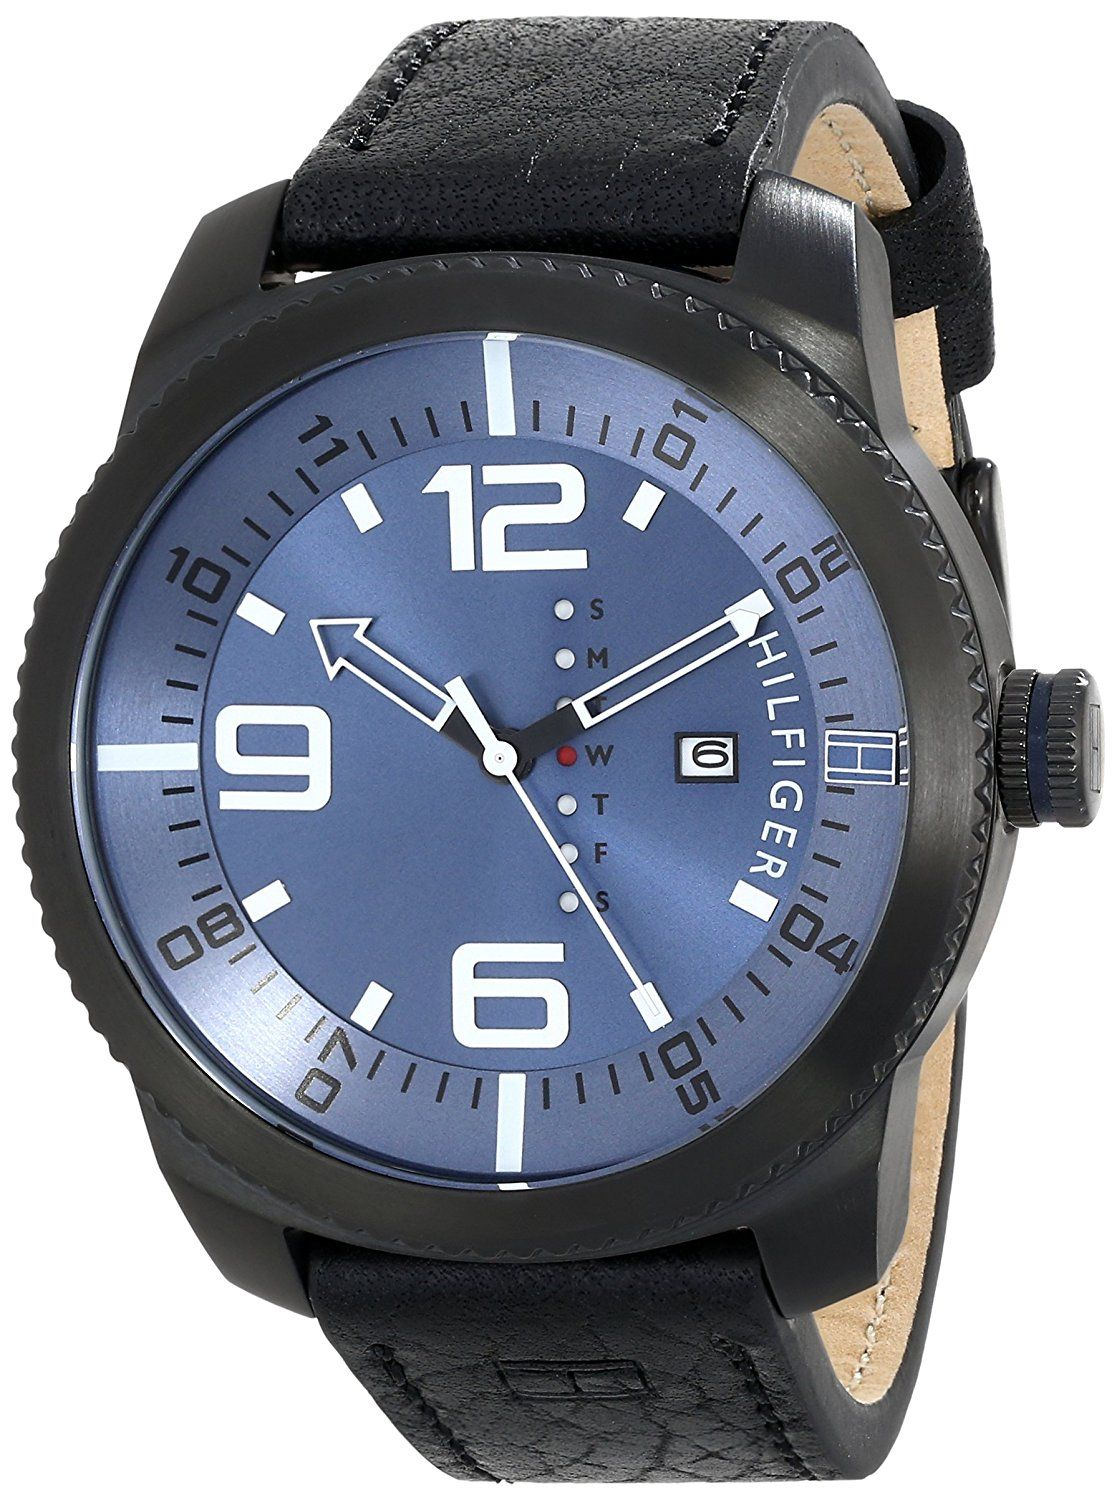 Tommy Hilfiger Men's 1791016 Analog Display Quartz Black Watch ** To view further for this watch, visit the image link.